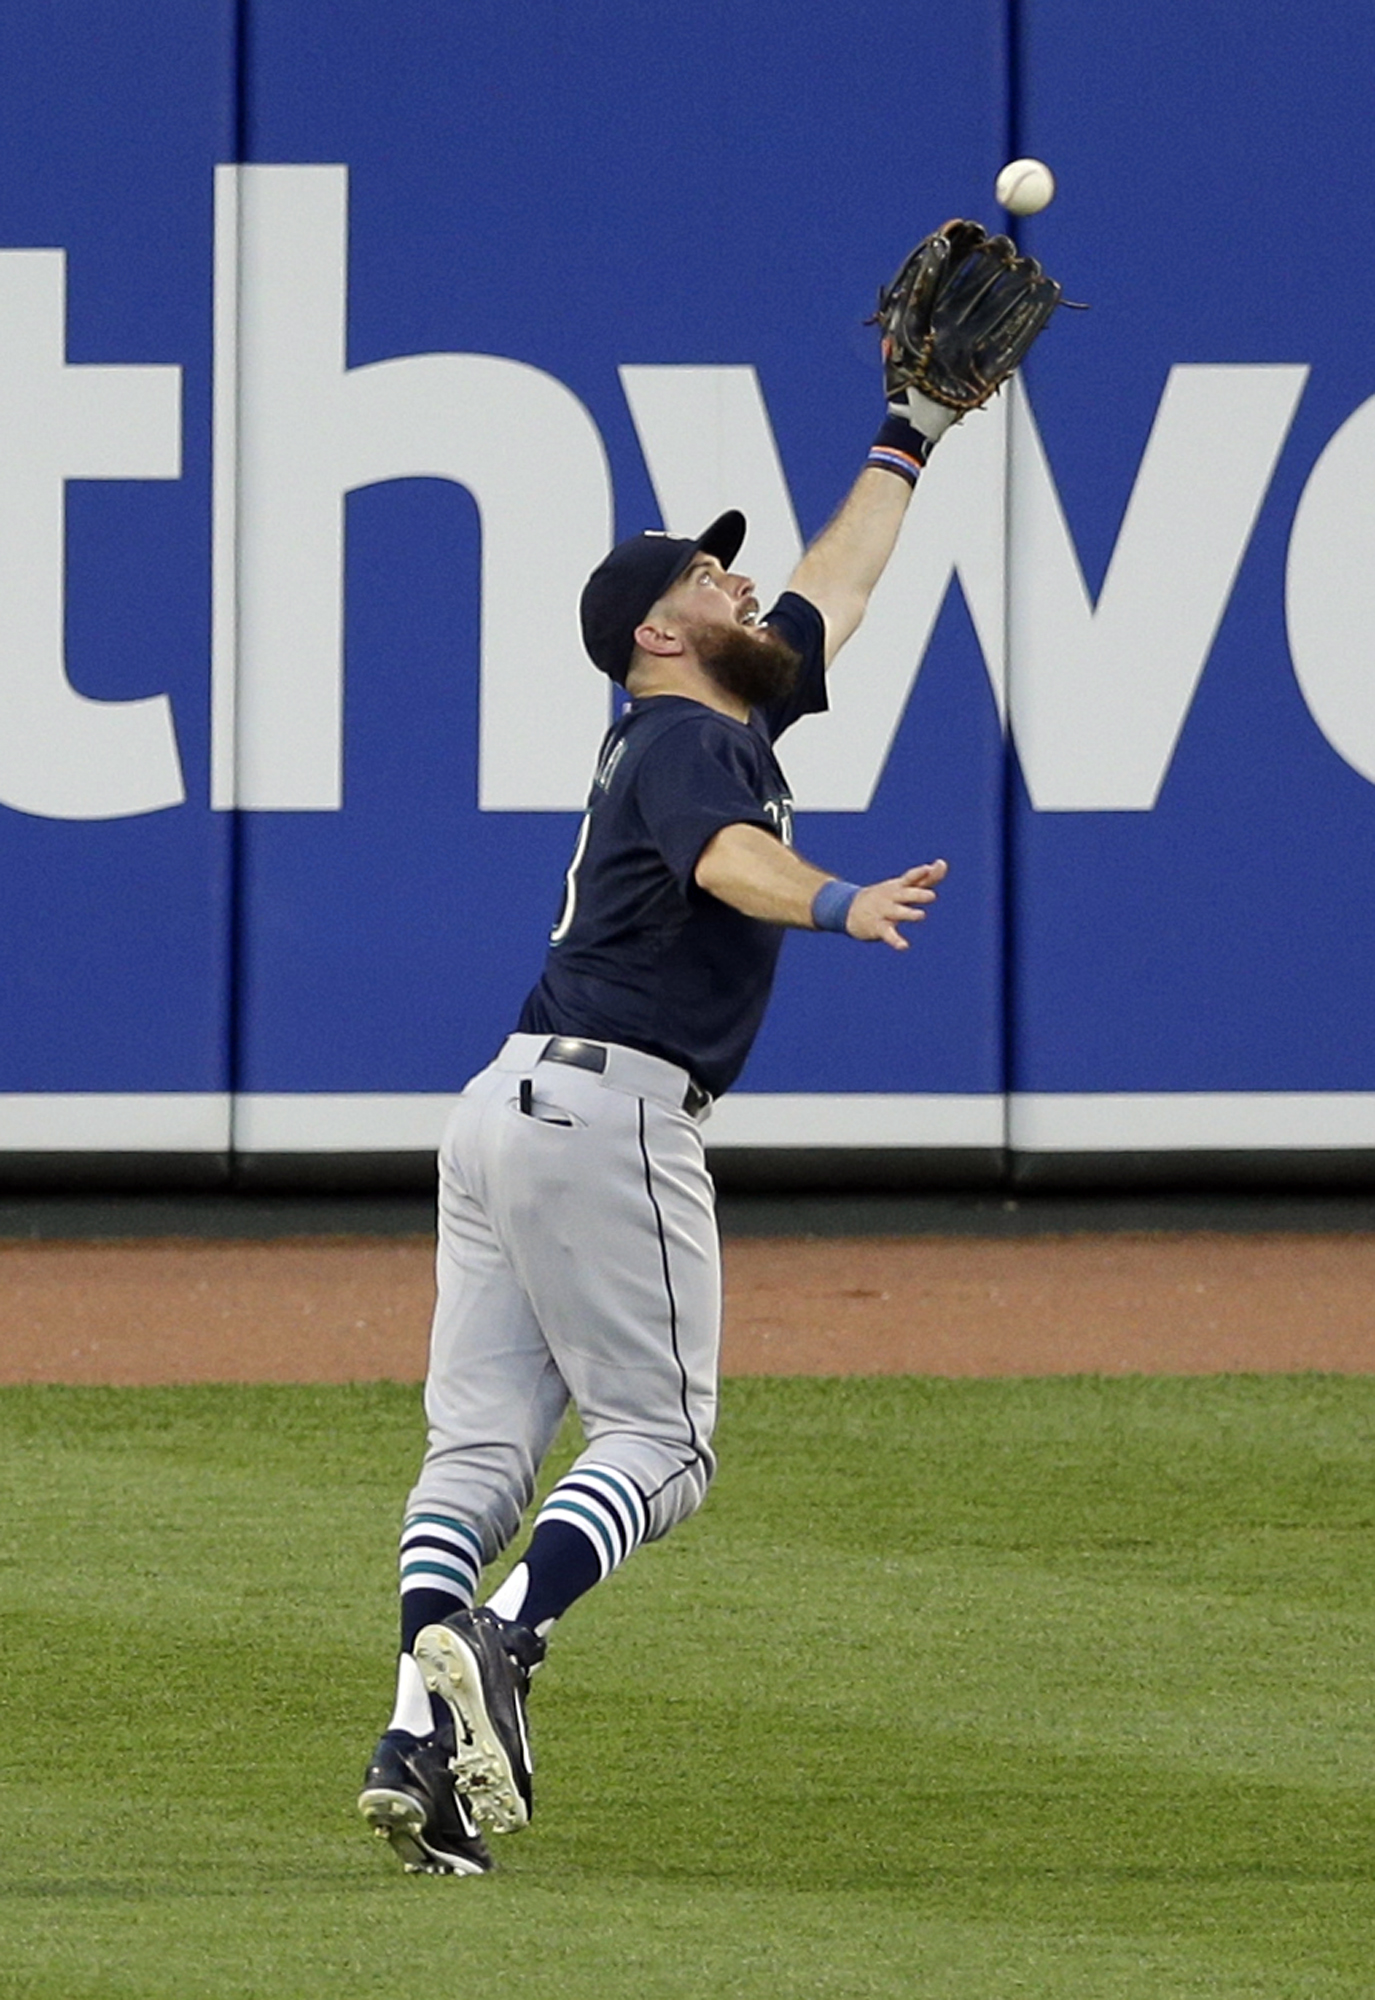 Seattle Mariners center fielder Dustin Ackley catches a fly ball that was hit by Baltimore Orioles' Jimmy Paredes in the third inning of a baseball game, Tuesday, May 19, 2015, in Baltimore. (AP Photo/Patrick Semansky)